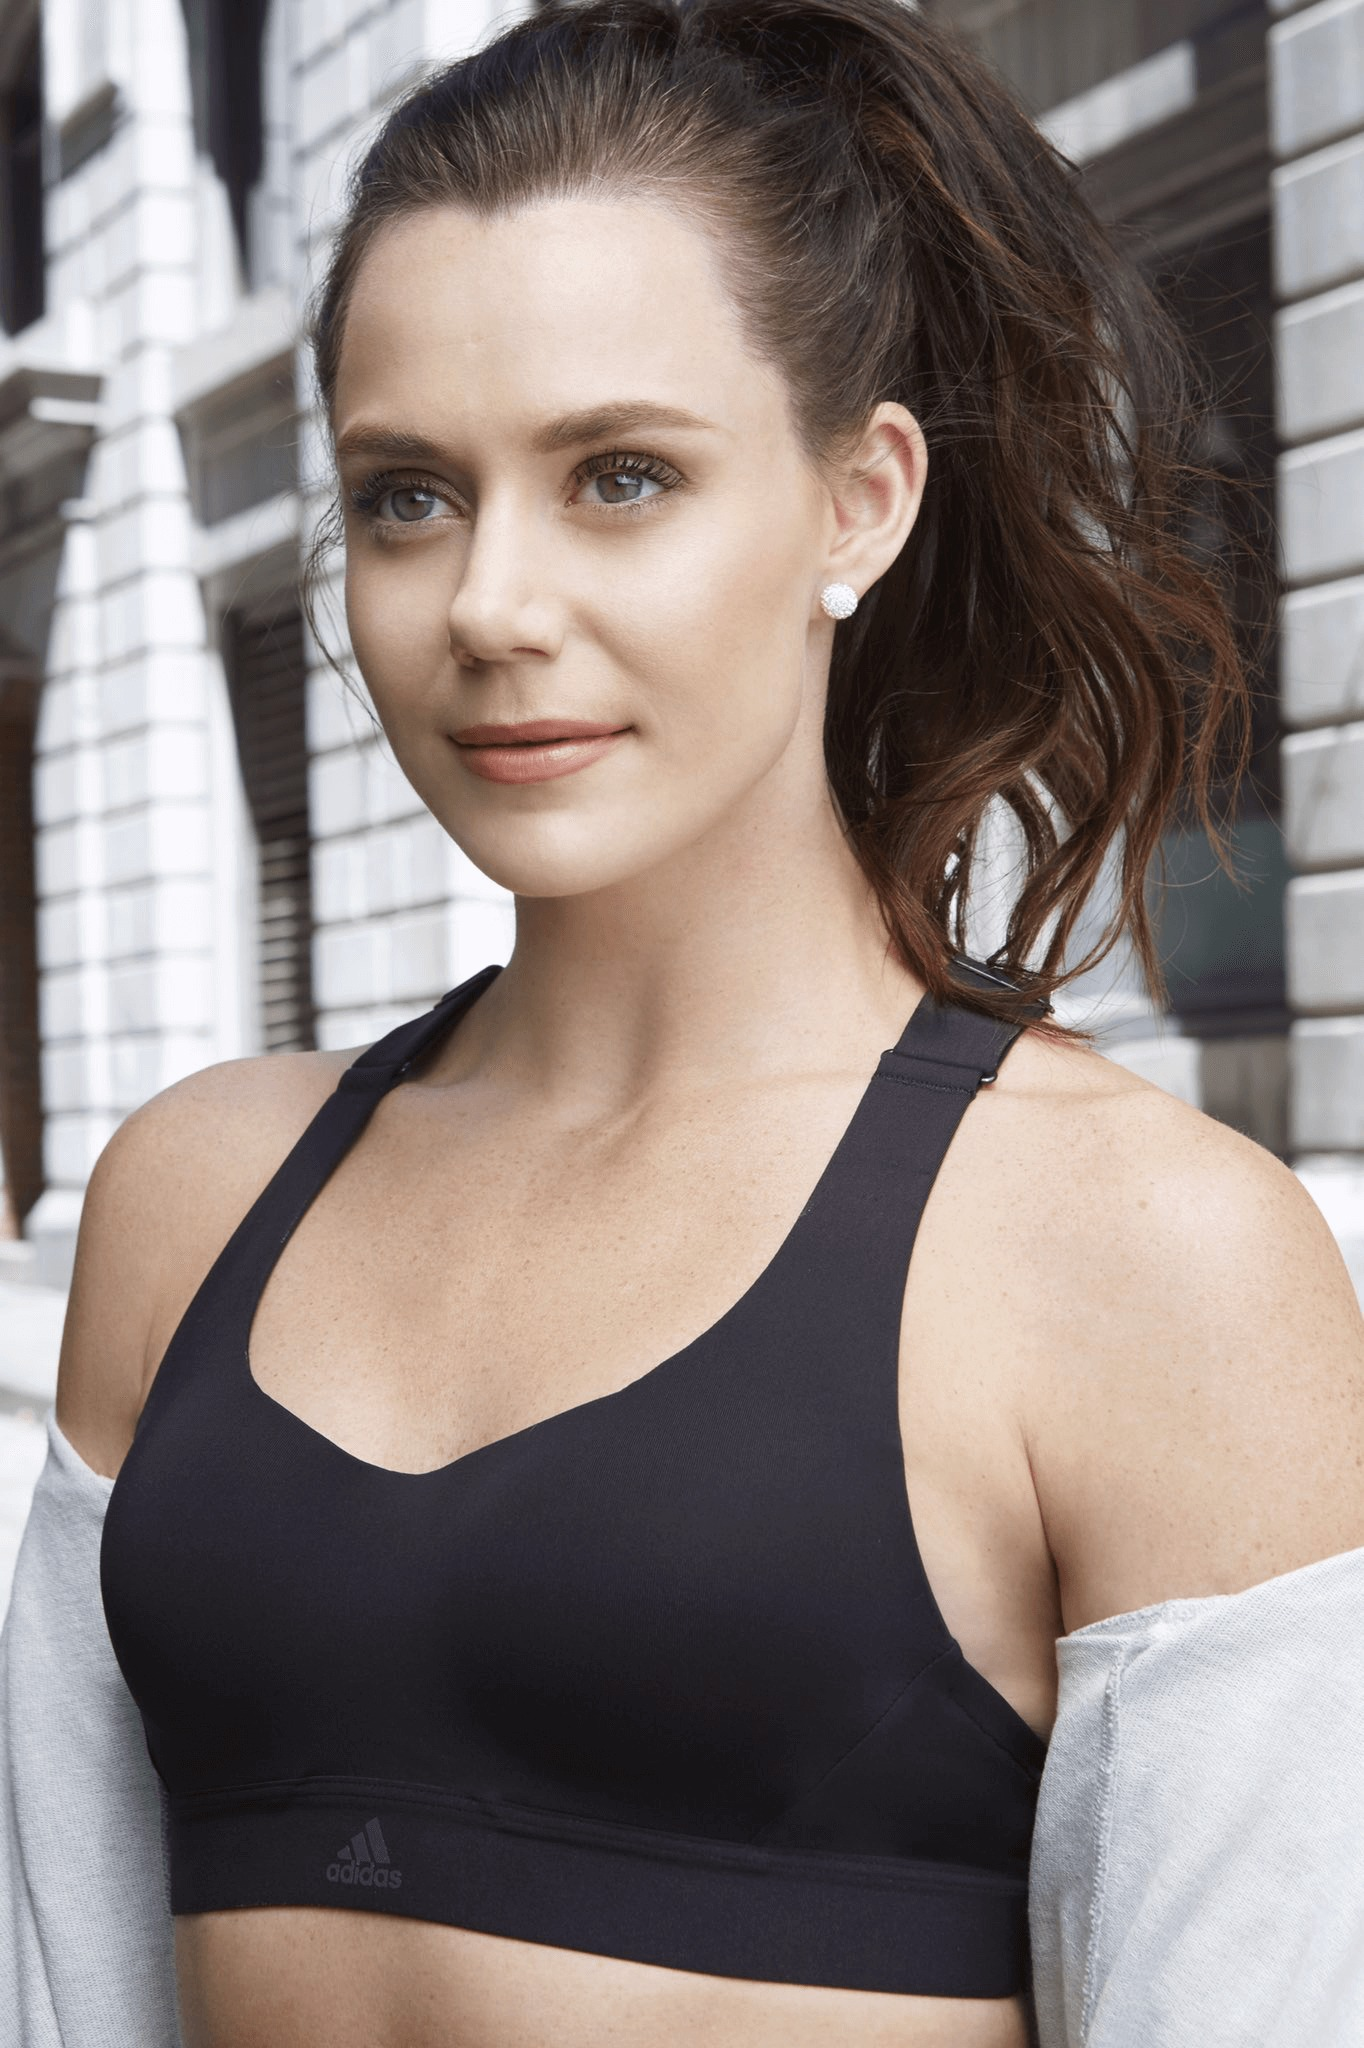 Tessa Virtue hot